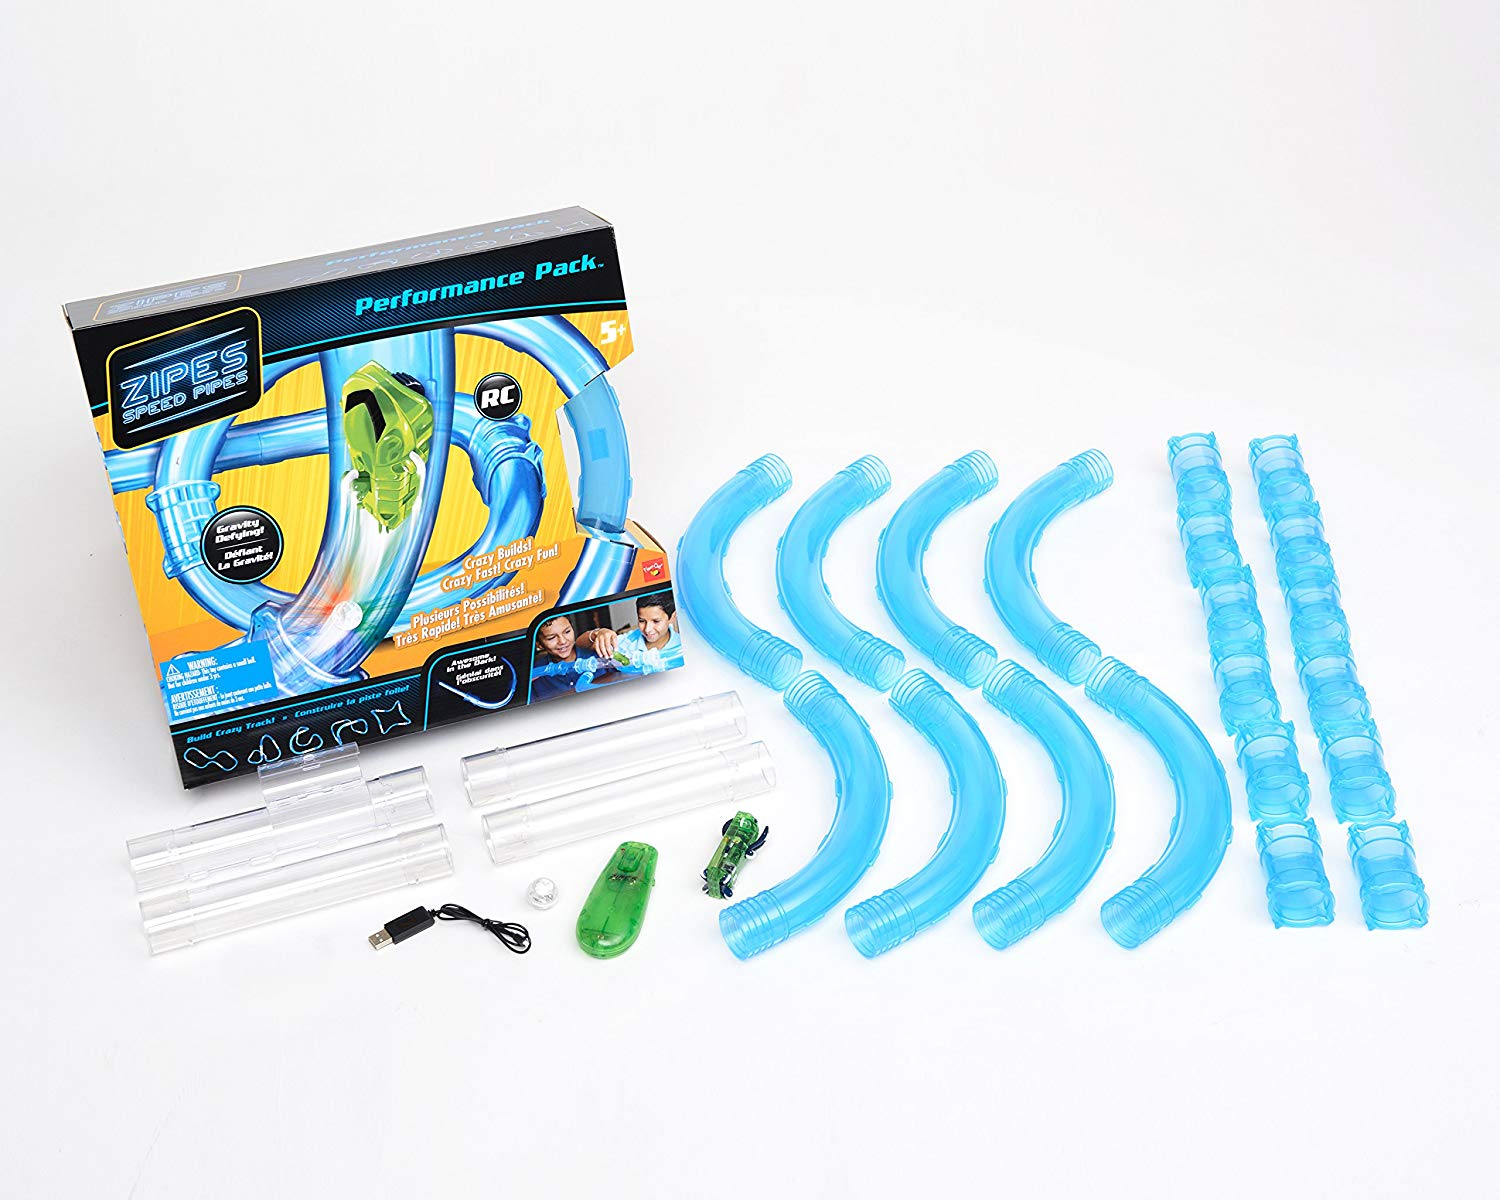 Zipes Speed Pipes - Performance Pack (Starter Set)